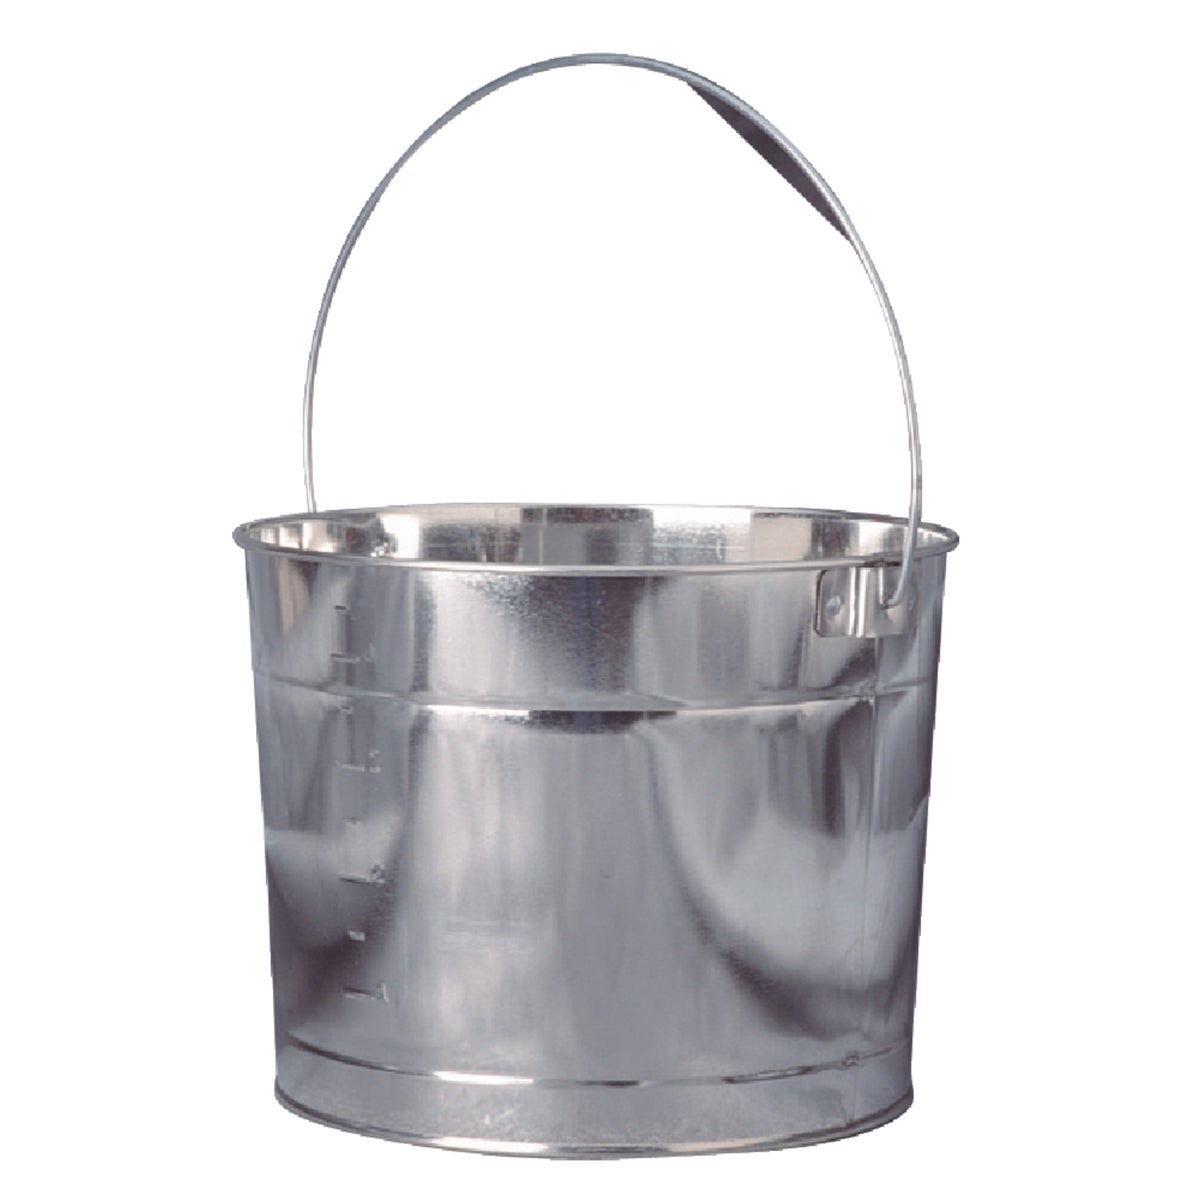 5QT METAL PAINT PAIL - 5 by Leaktite Corporation